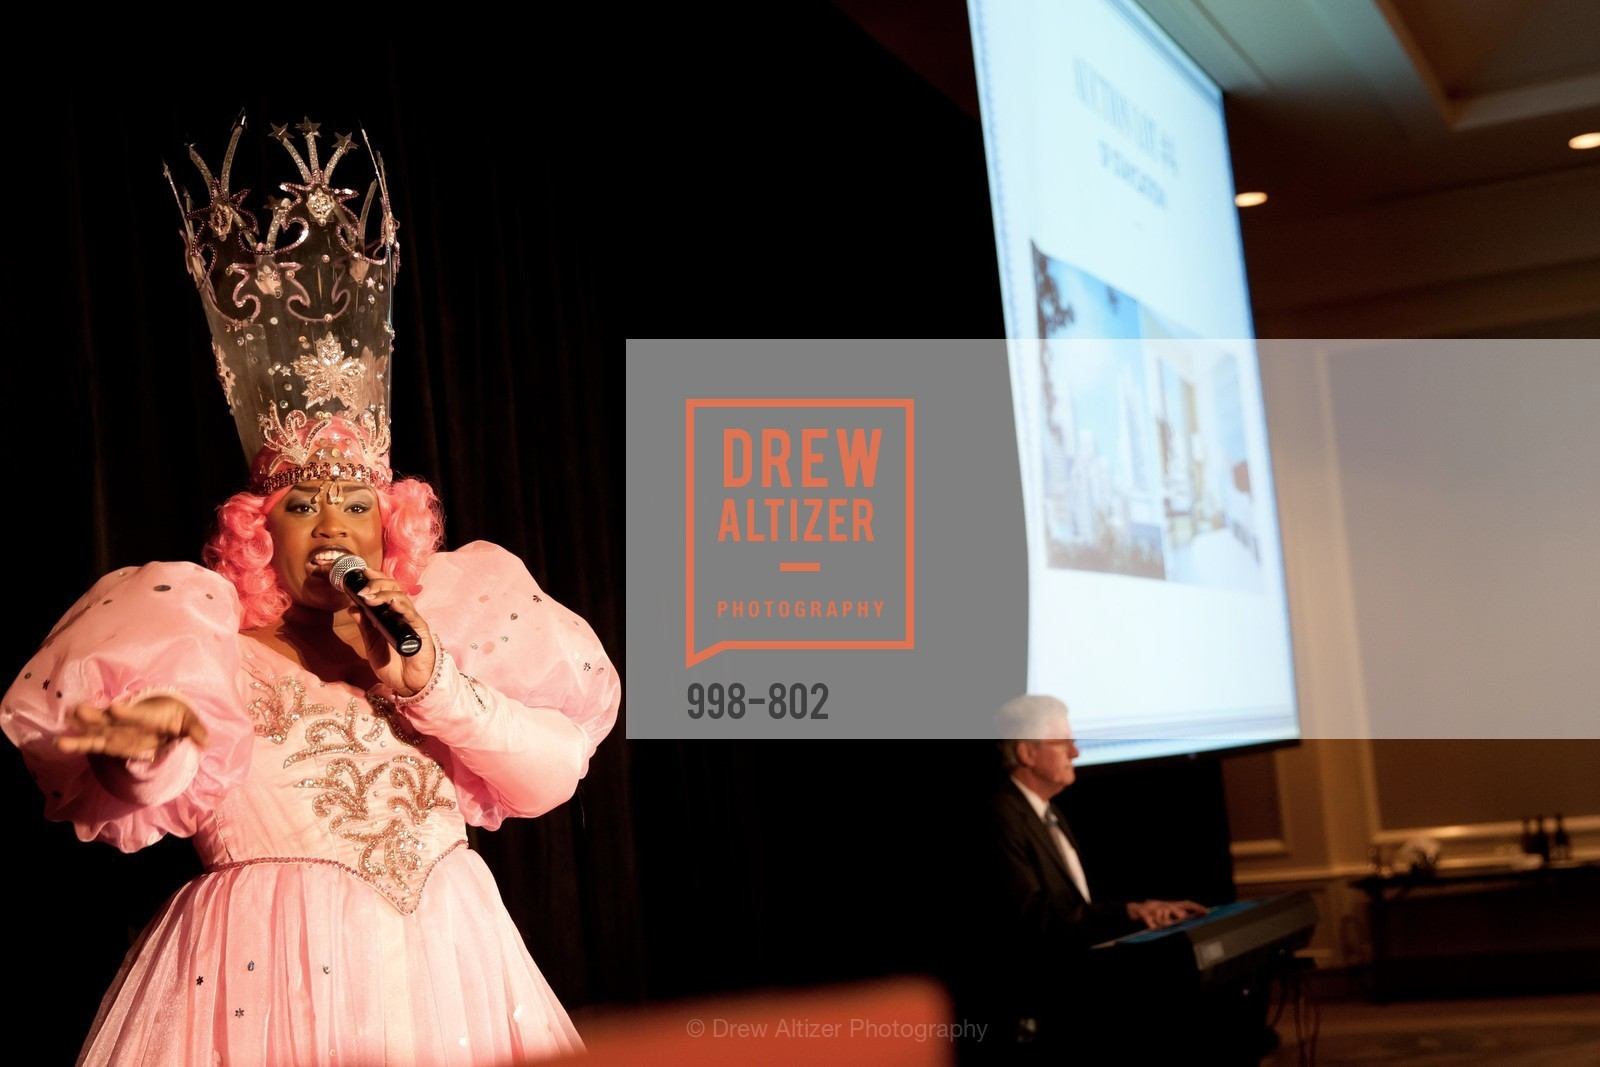 Beach Blanket Babylon, MR PORTER Celebrate The San Francisco Issue of The Journal, US, April 24th, 2015,Drew Altizer, Drew Altizer Photography, full-service agency, private events, San Francisco photographer, photographer california